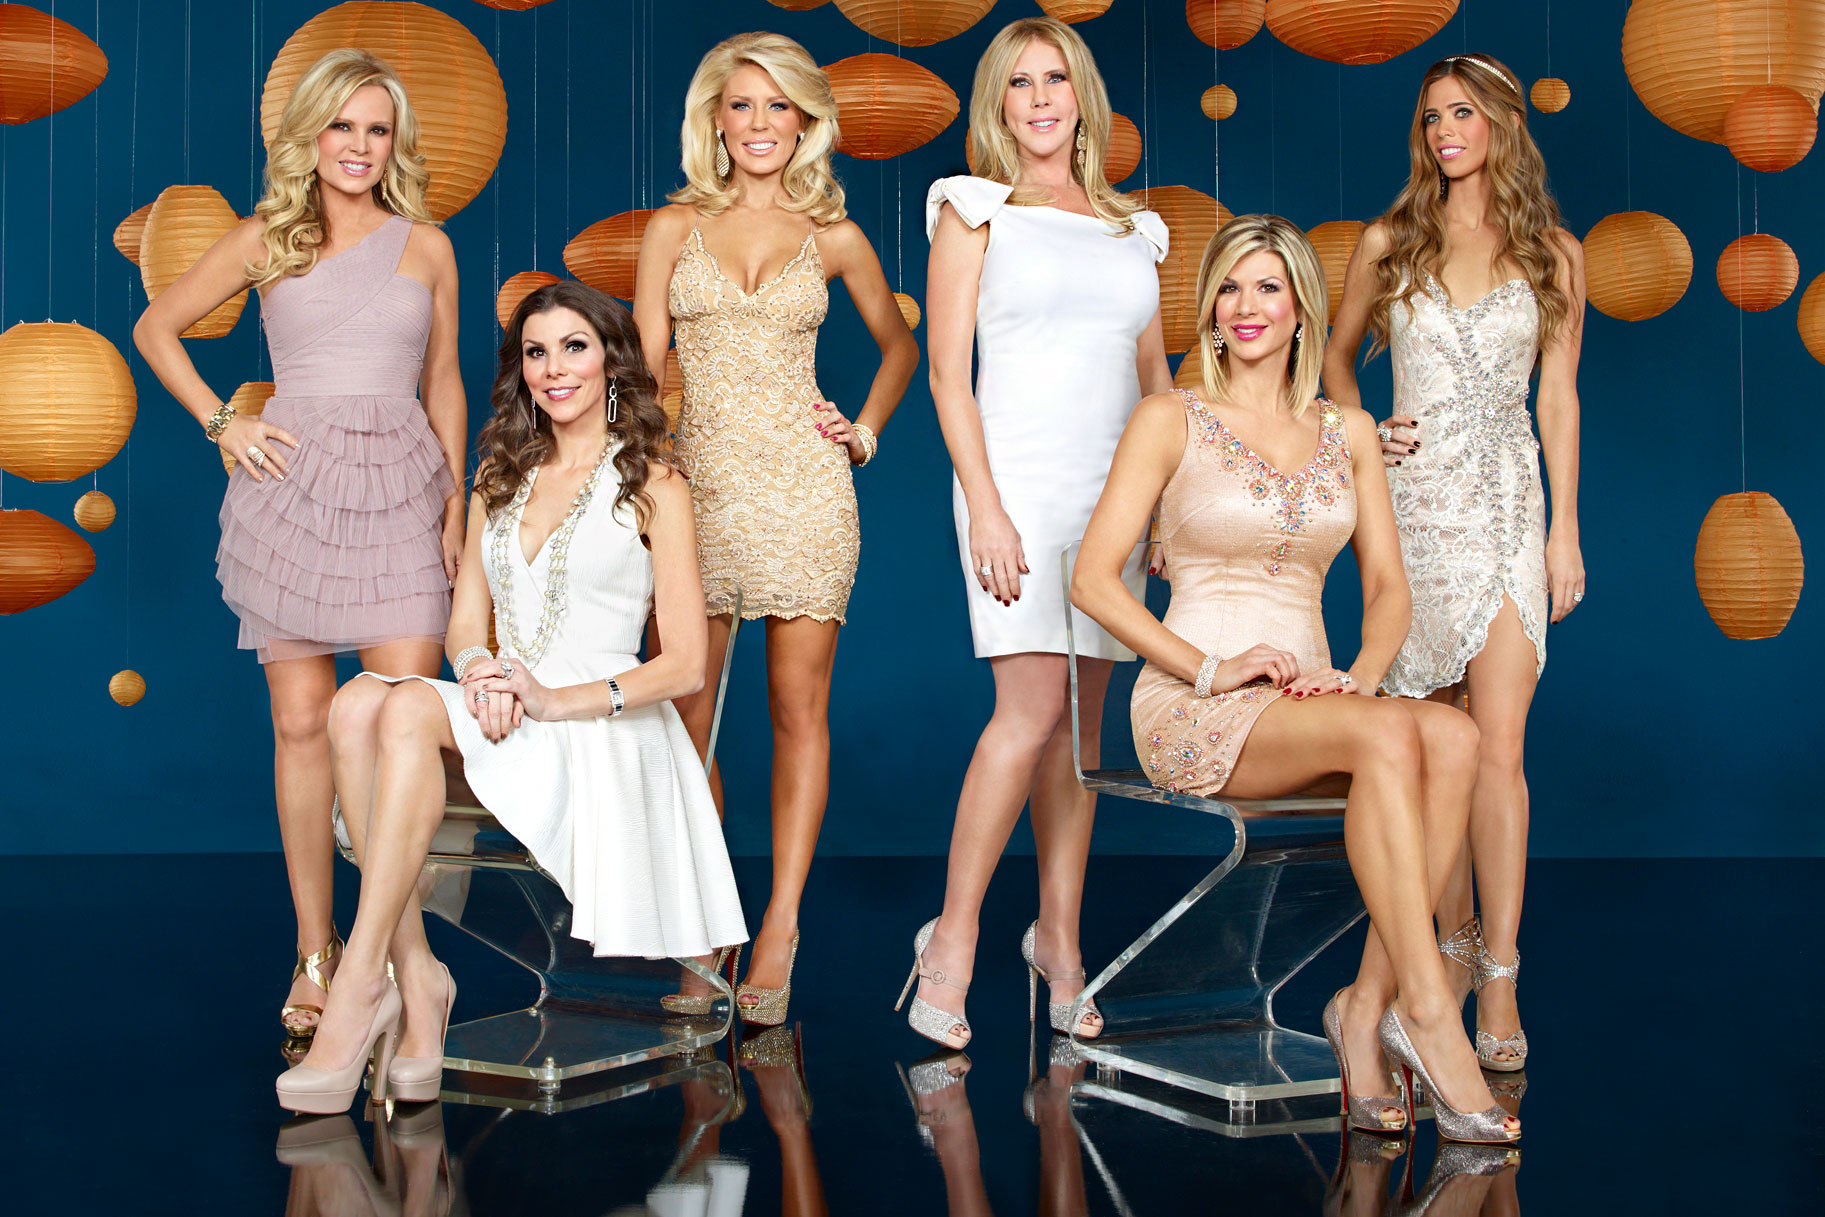 Real Housewives of Orange County S8 Premiere Date: April 1